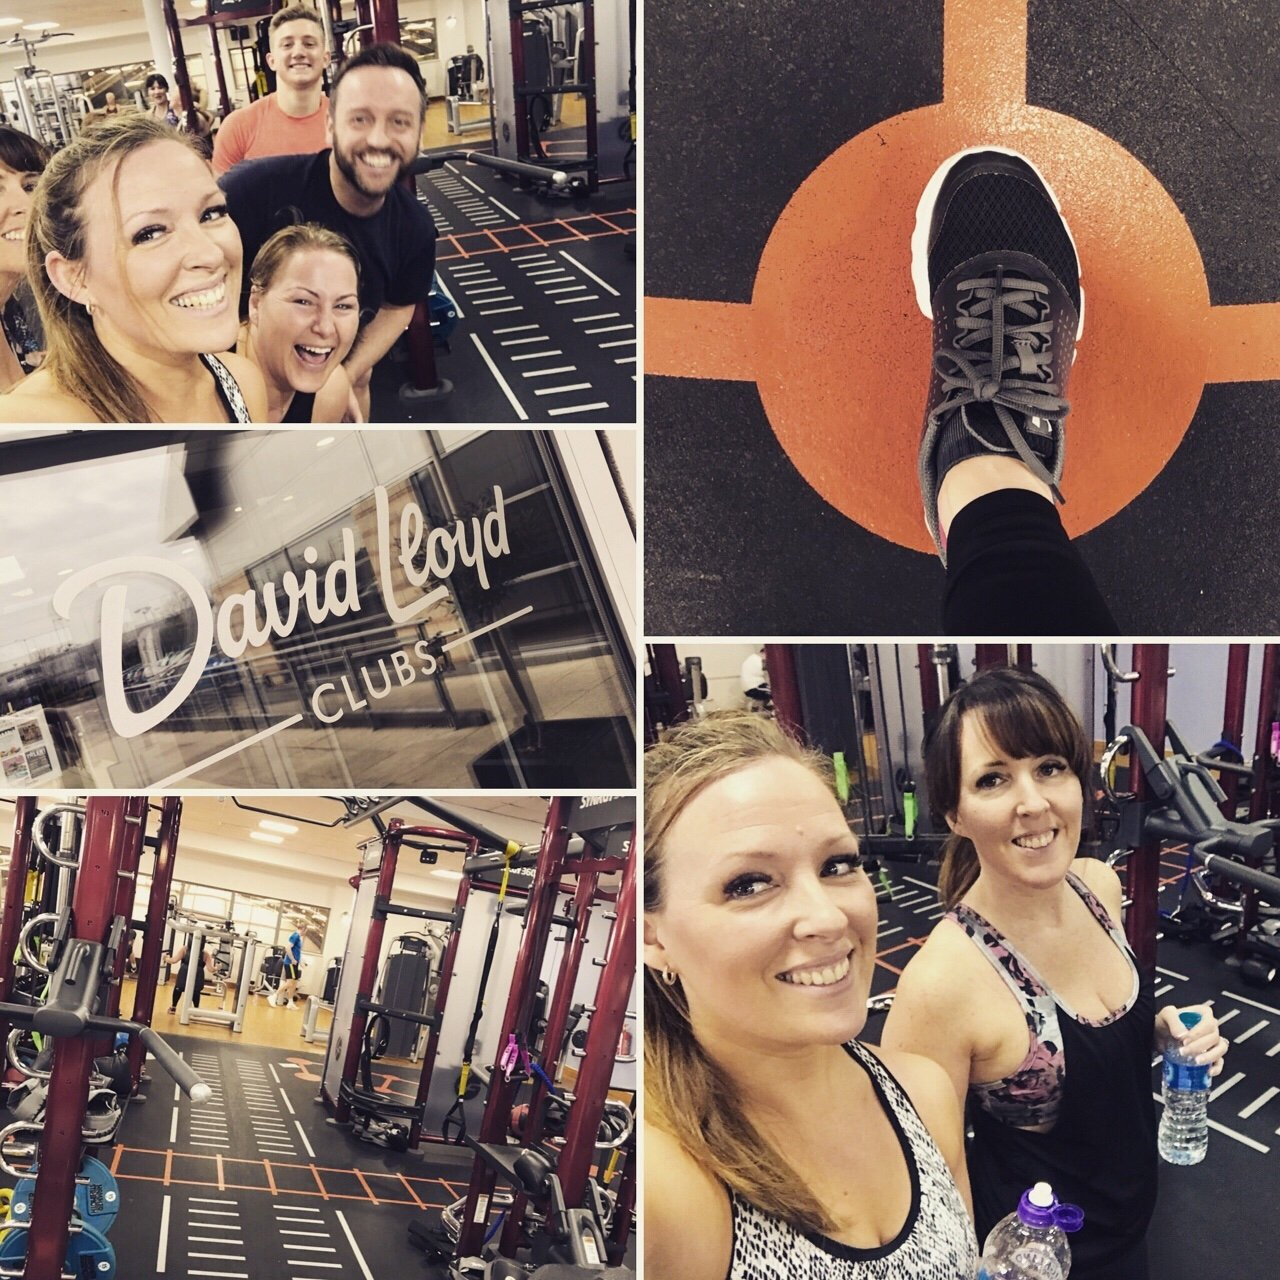 david lloyd collage, gym equipment and people smiling